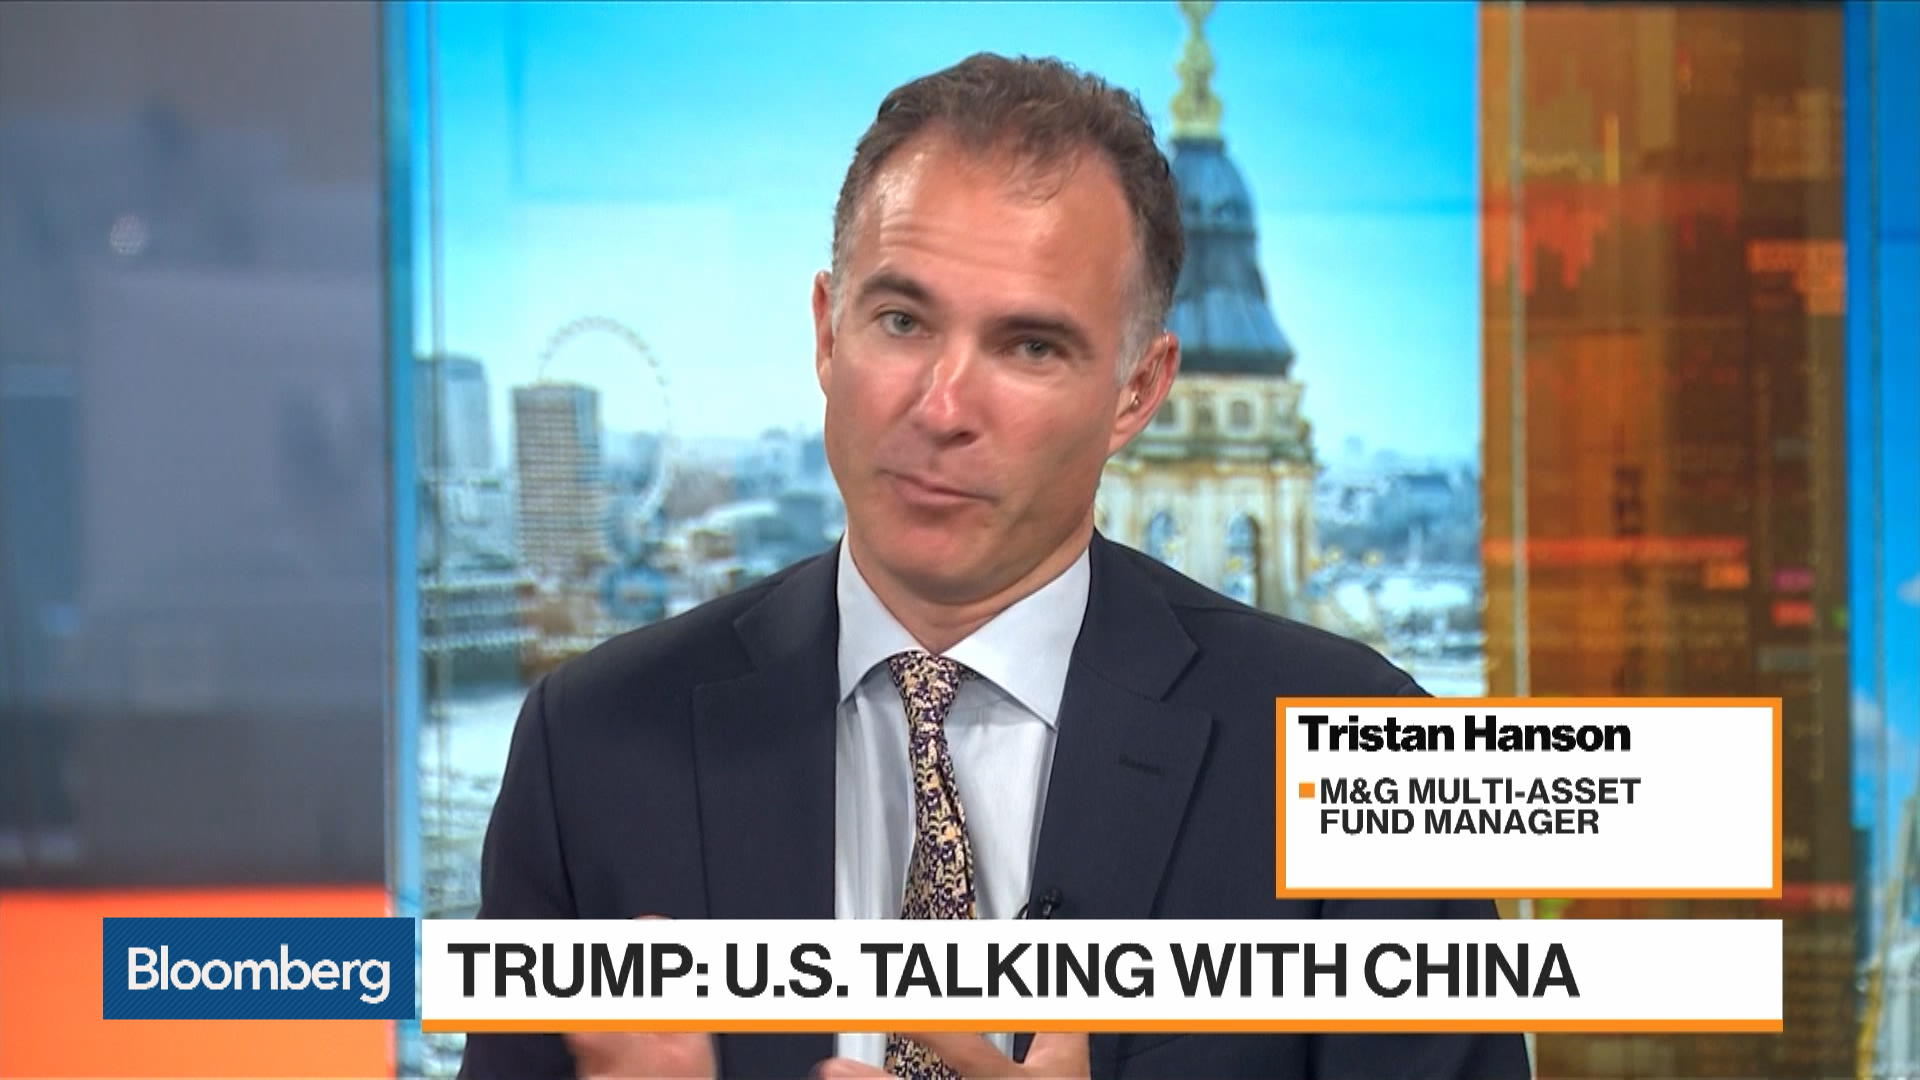 M&G Multi-Asset Fund Manager Tristan Hanson on Market Optimism, Volatility, Finding Yield